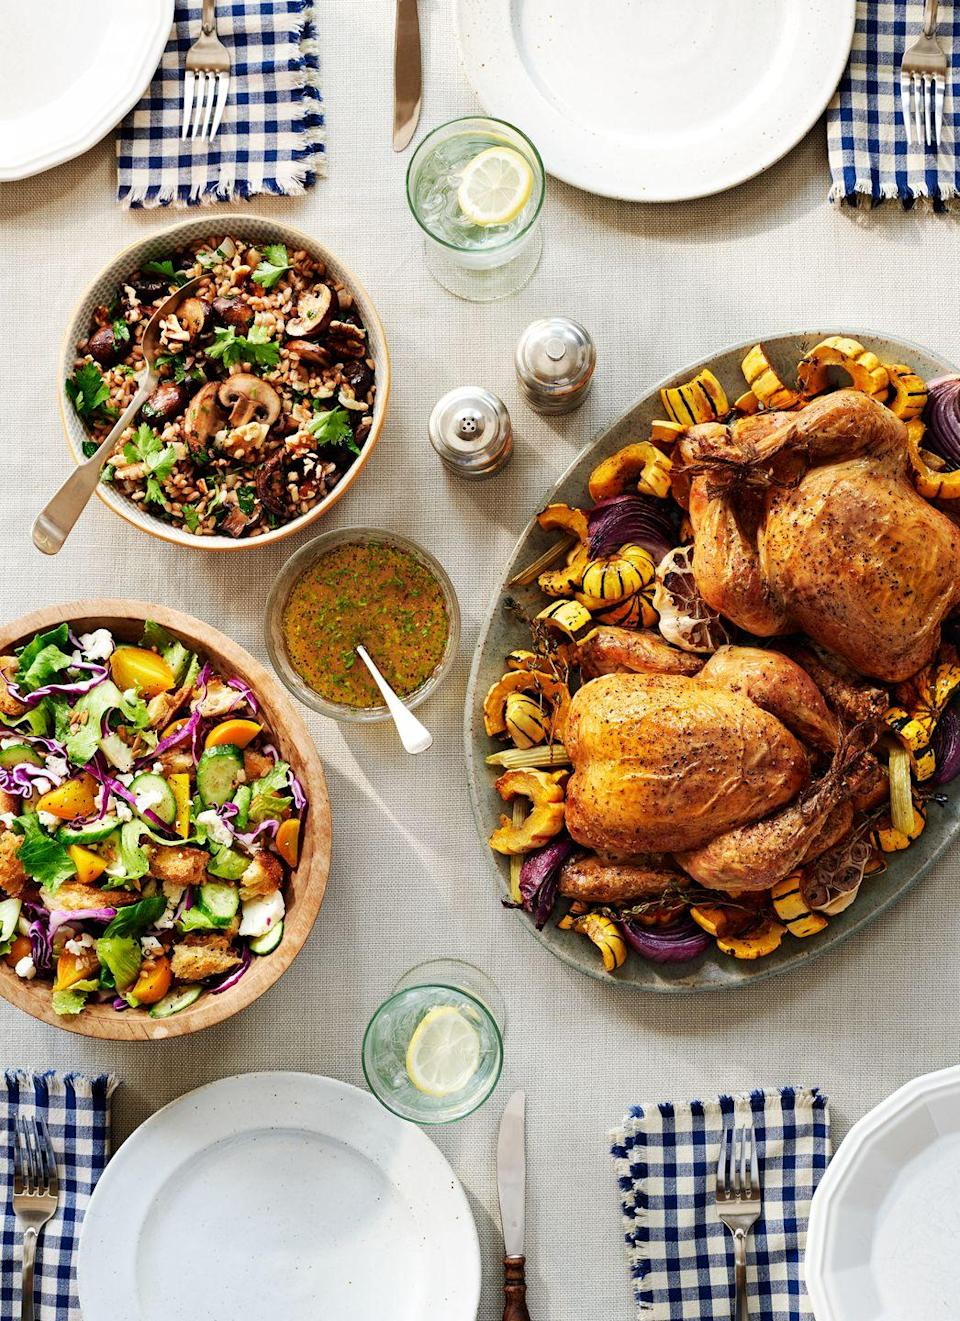 "<p>As each weekend comes to an end, gather your brood around the table for a relaxed, gear-up-for-Monday meal. While certainly company-worthy, this roast chicken won't ruffle your feathers. (It's your weekend too!)</p><p><a href=""https://www.countryliving.com/food-drinks/recipes/a37295/roasted-chicken-and-winter-squash/"" rel=""nofollow noopener"" target=""_blank"" data-ylk=""slk:Get the recipe."" class=""link rapid-noclick-resp""><strong>Get the recipe.</strong></a></p>"